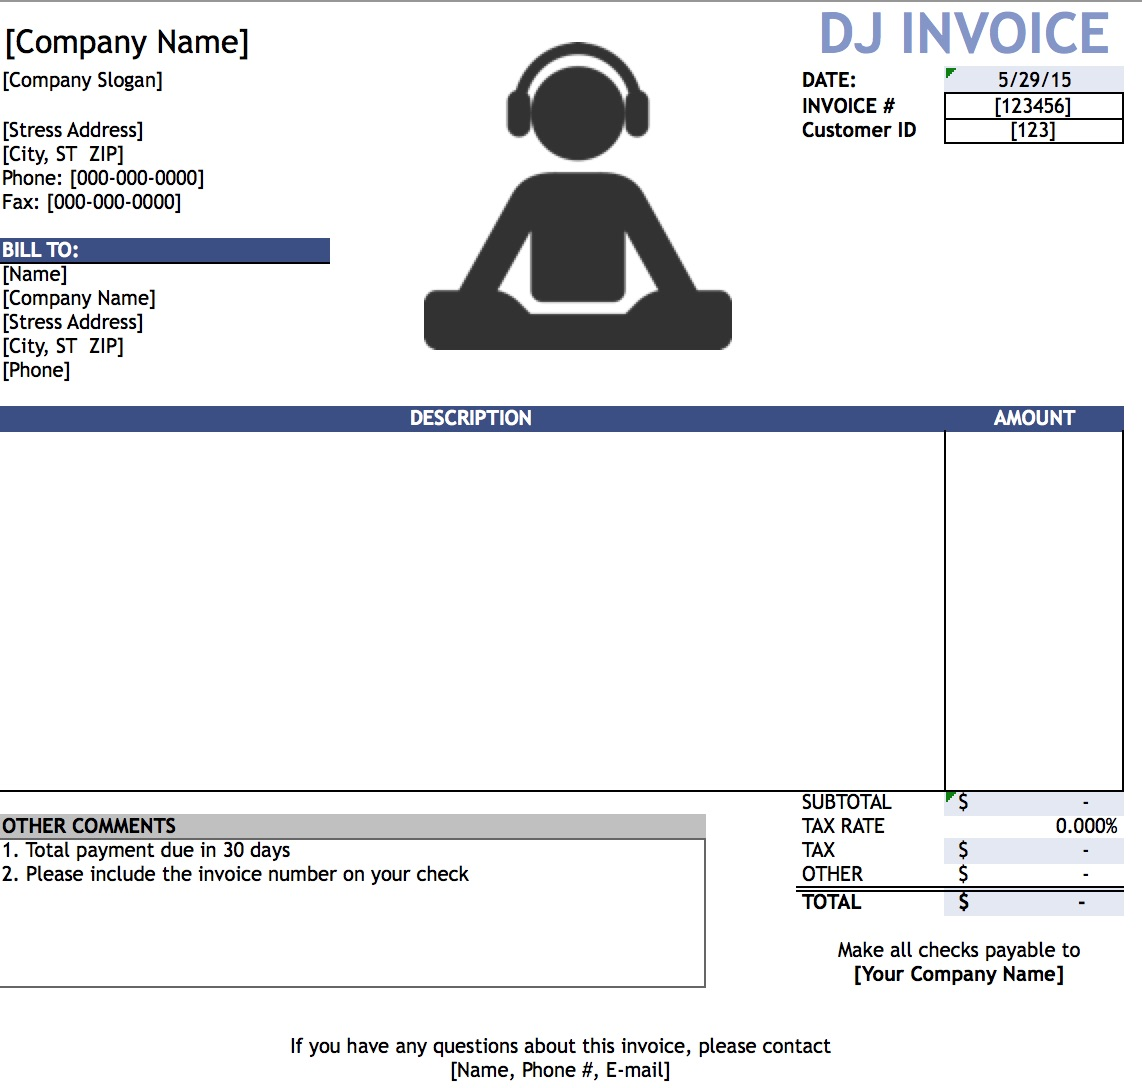 Free DJ Disc Jockey Invoice Template Excel PDF Word Doc - Invoices template free for service business